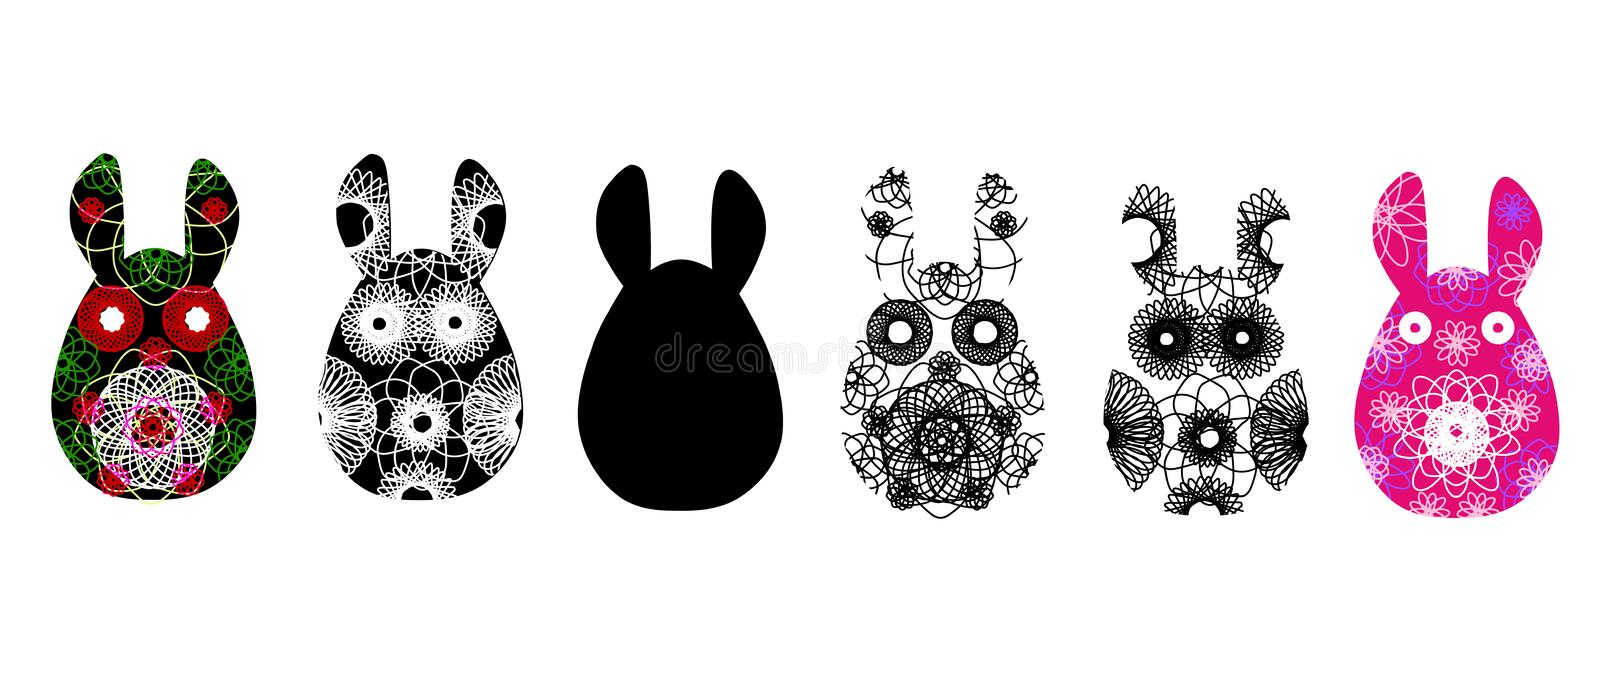 Set of rabbit silhouettes with a contrasty abstract pattern. Vector illustration isolated on white background. Unusual bunny for t vector illustration